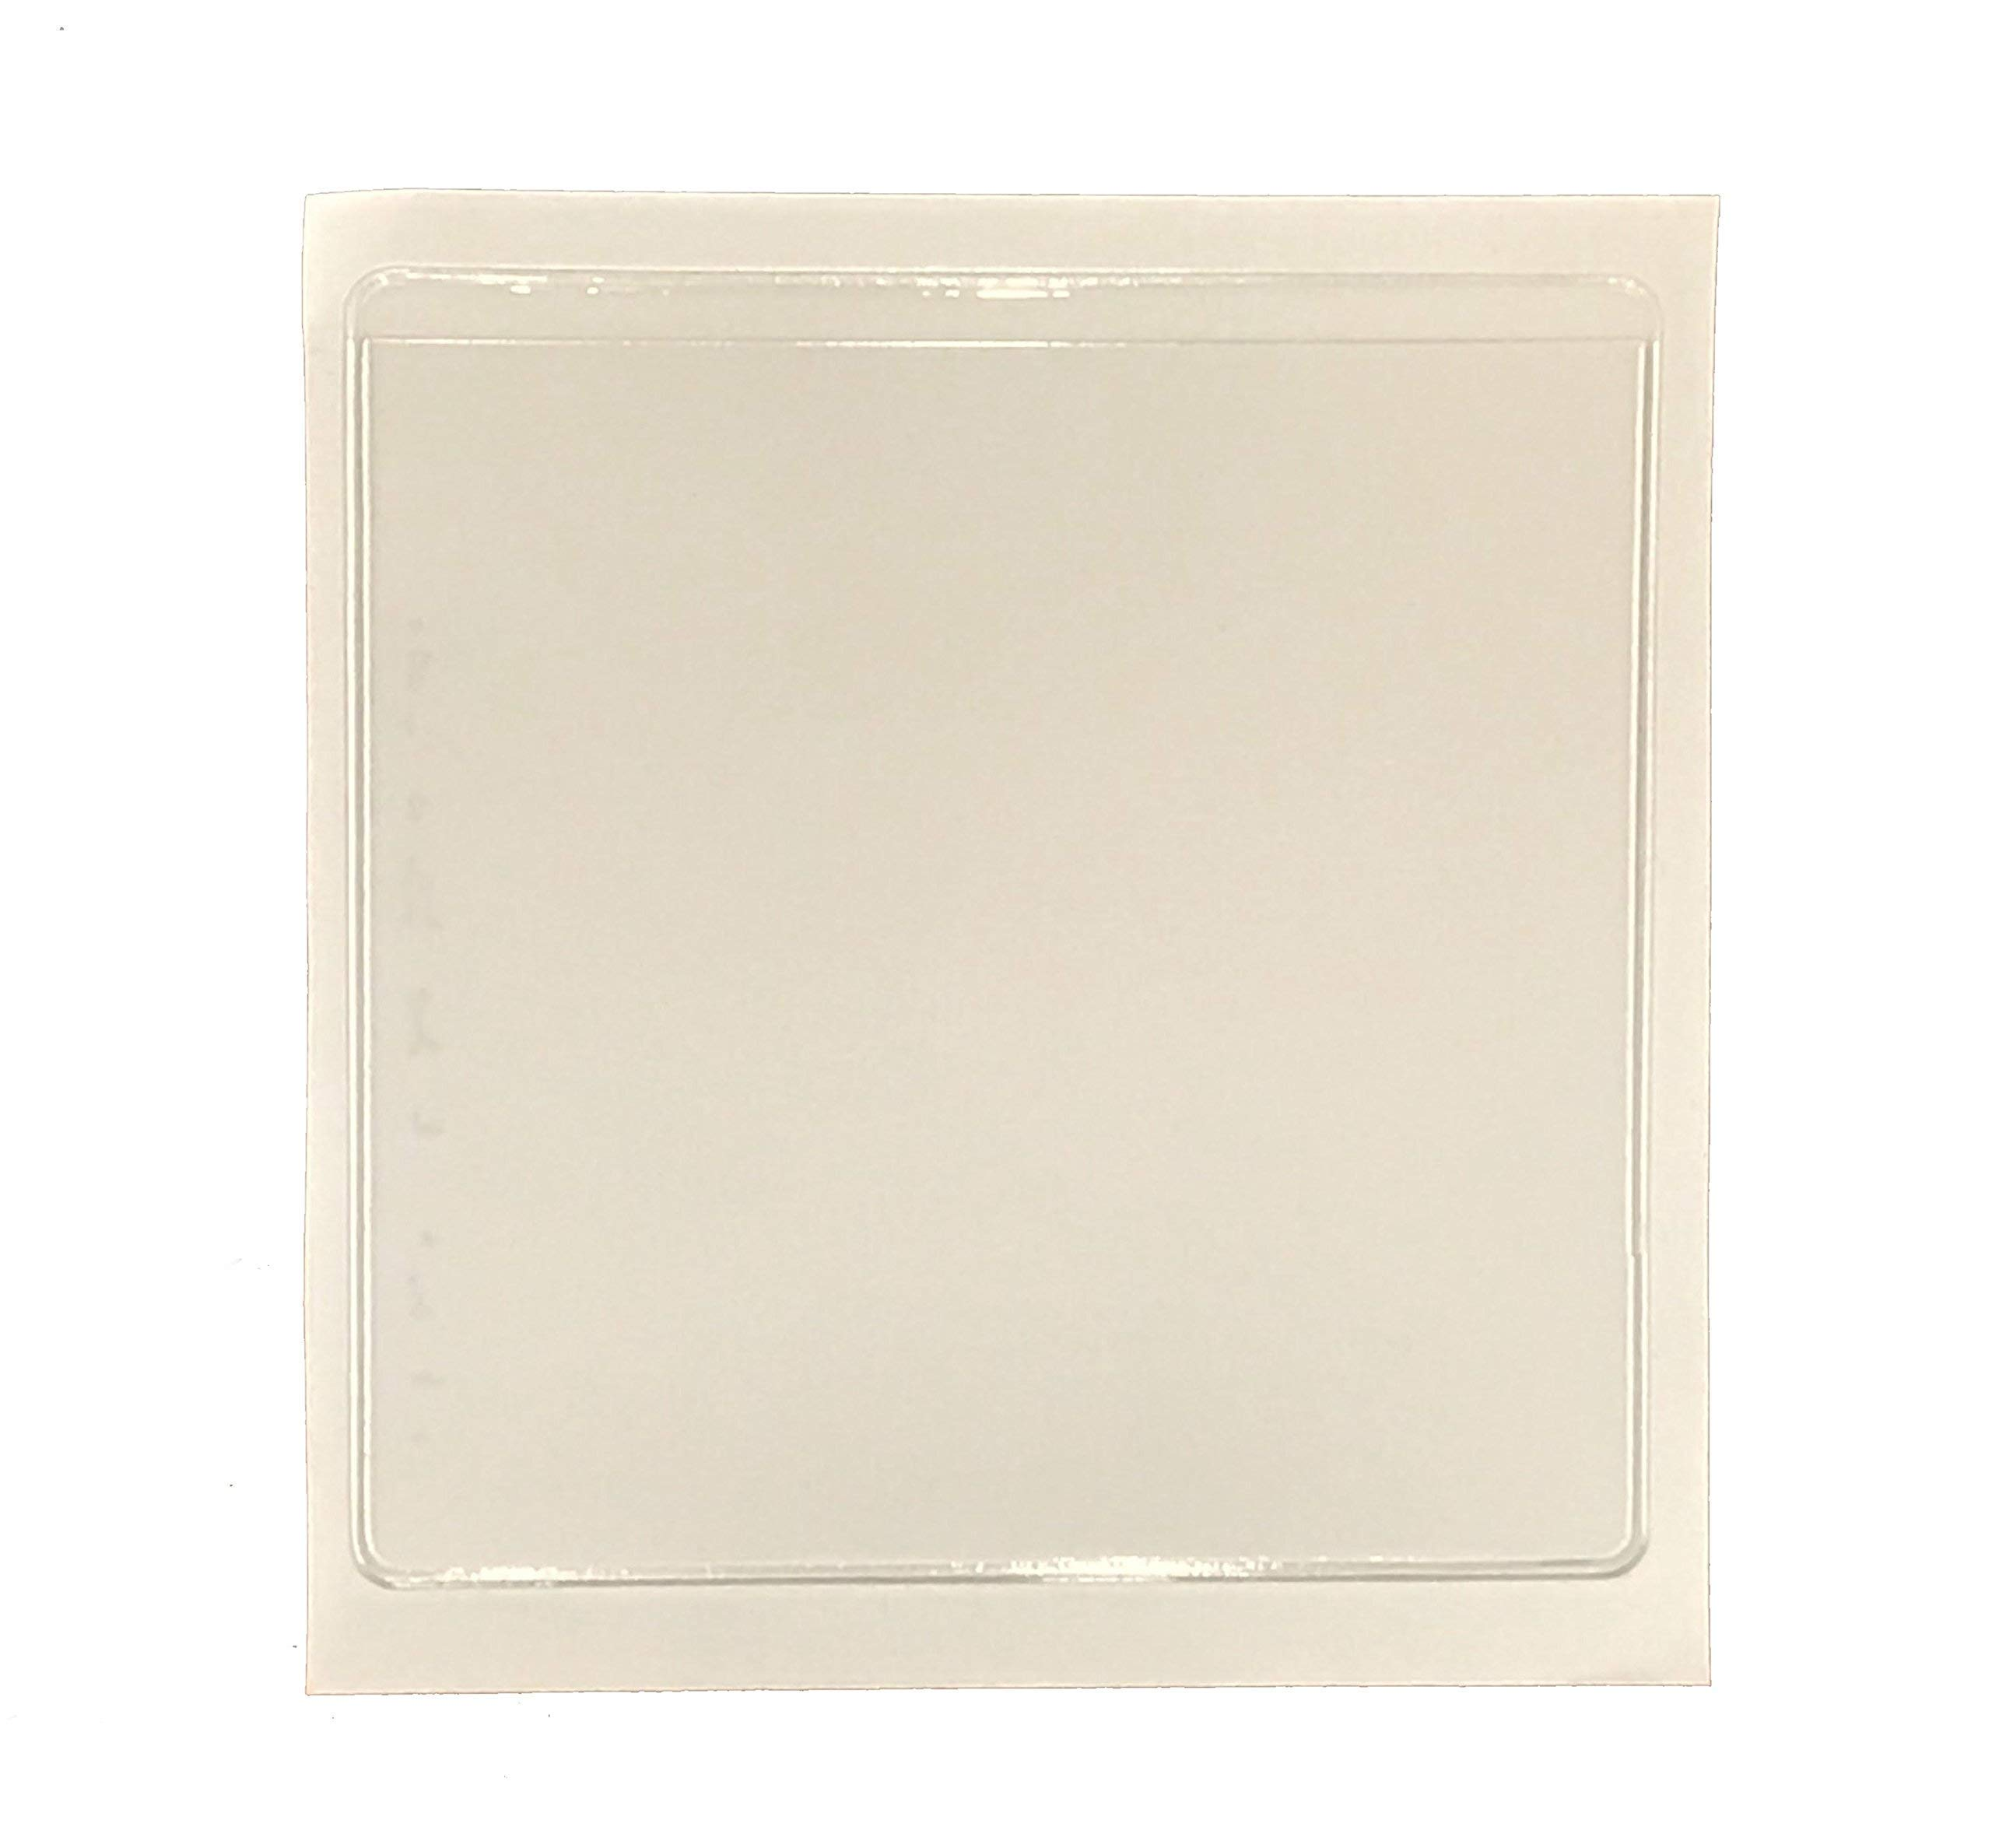 Adhesive Square Label Pockets Holder 3.2 Mil Heavy Duty (3.5'' by 3.5'') Set of 30 by Shop One Twenty